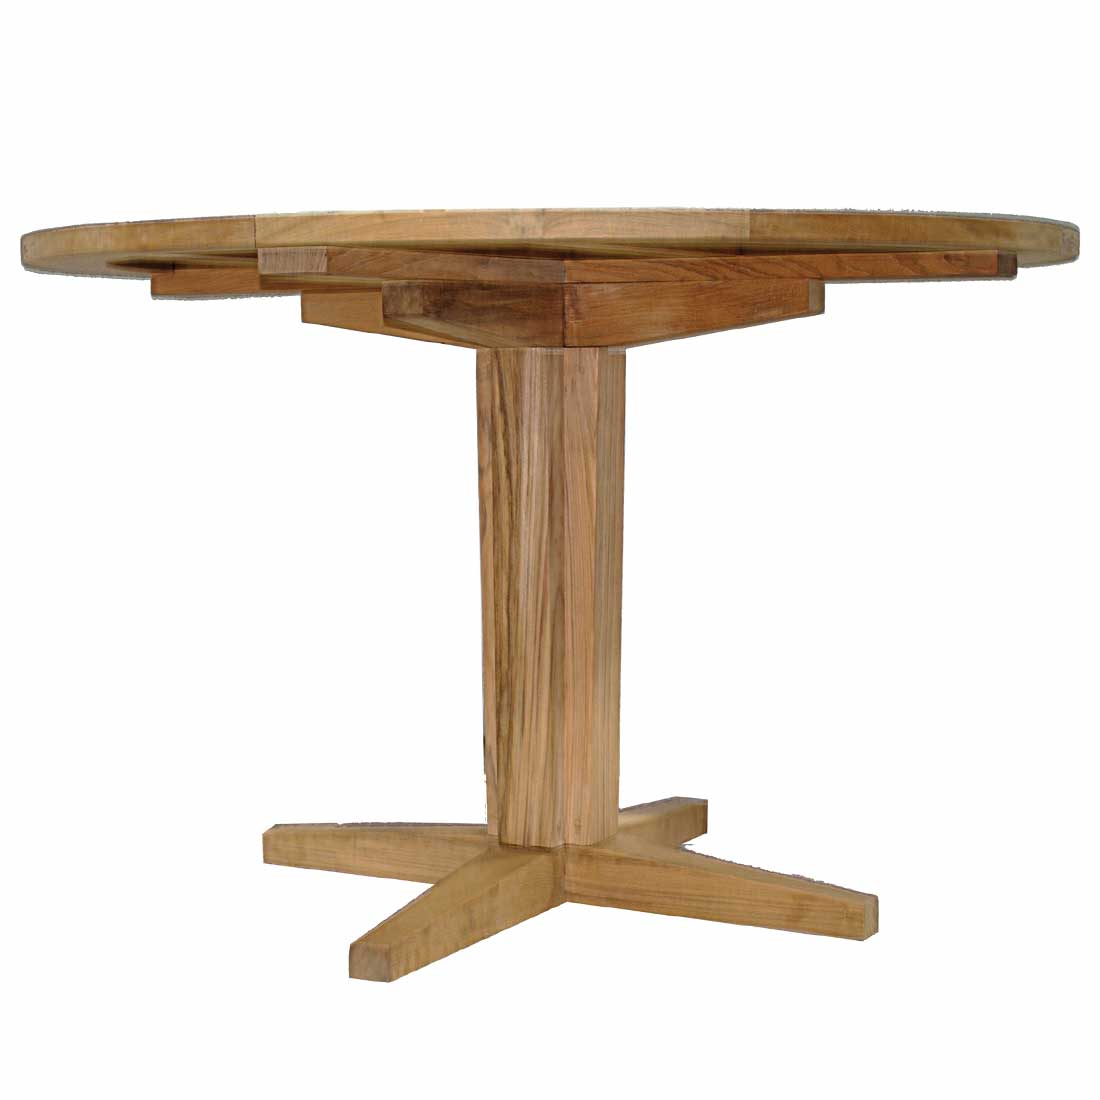 Club Teak Pedestal Base Teak Table Base